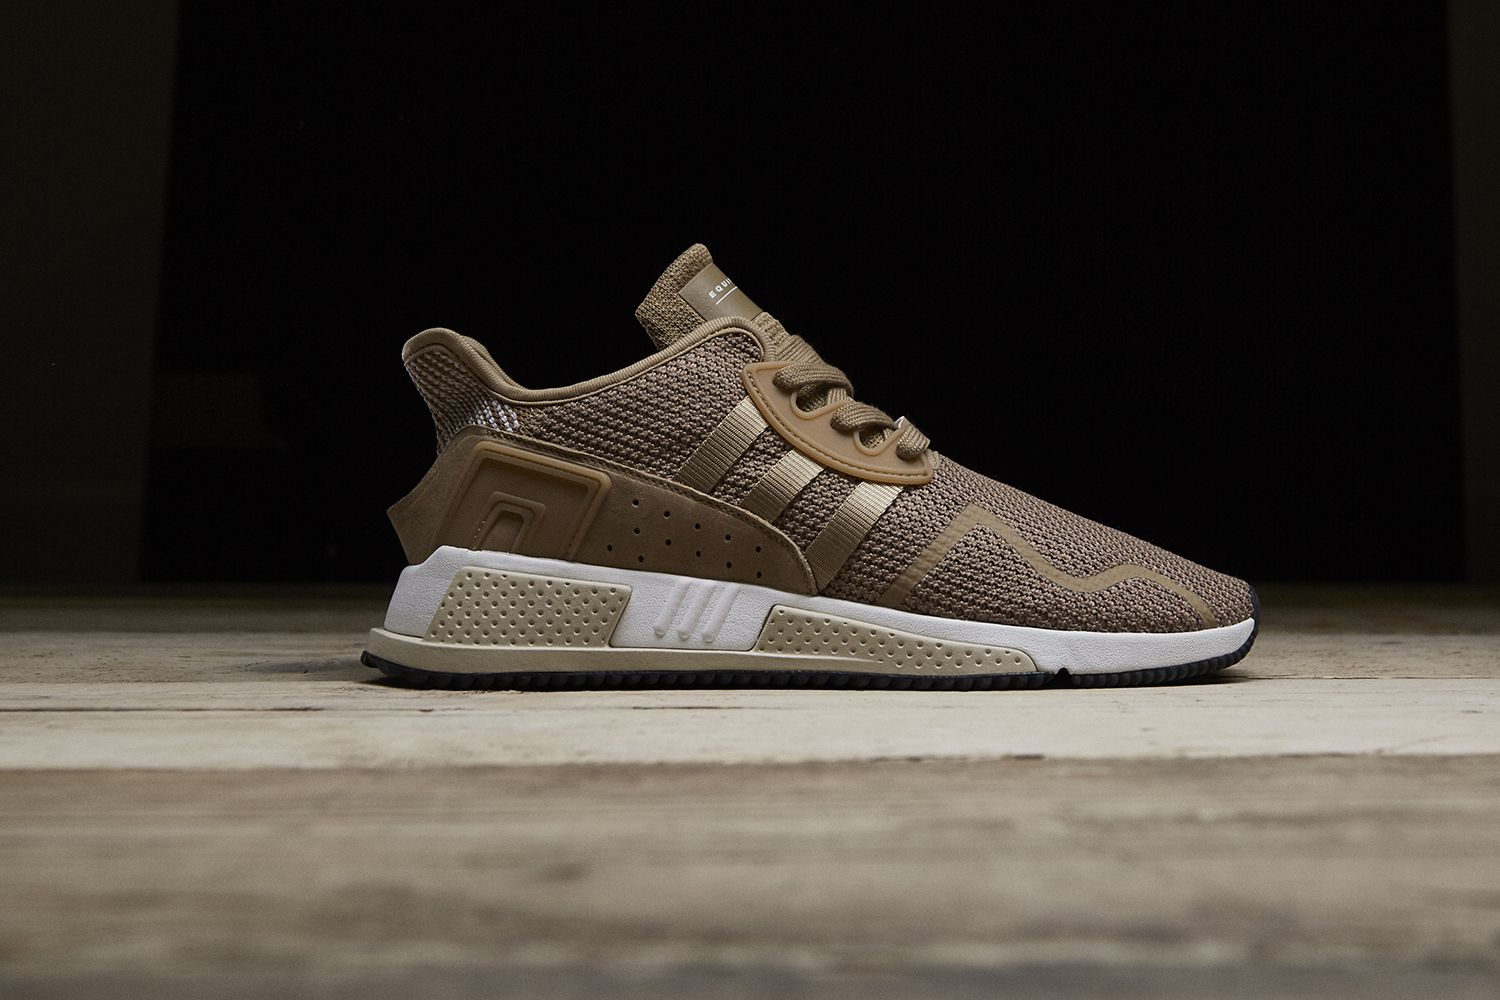 huge discount 2af28 ac061 Exclusive adidas EQT Cushion ADV in Earthy Brown - EU Kicks Sneaker  Magazine